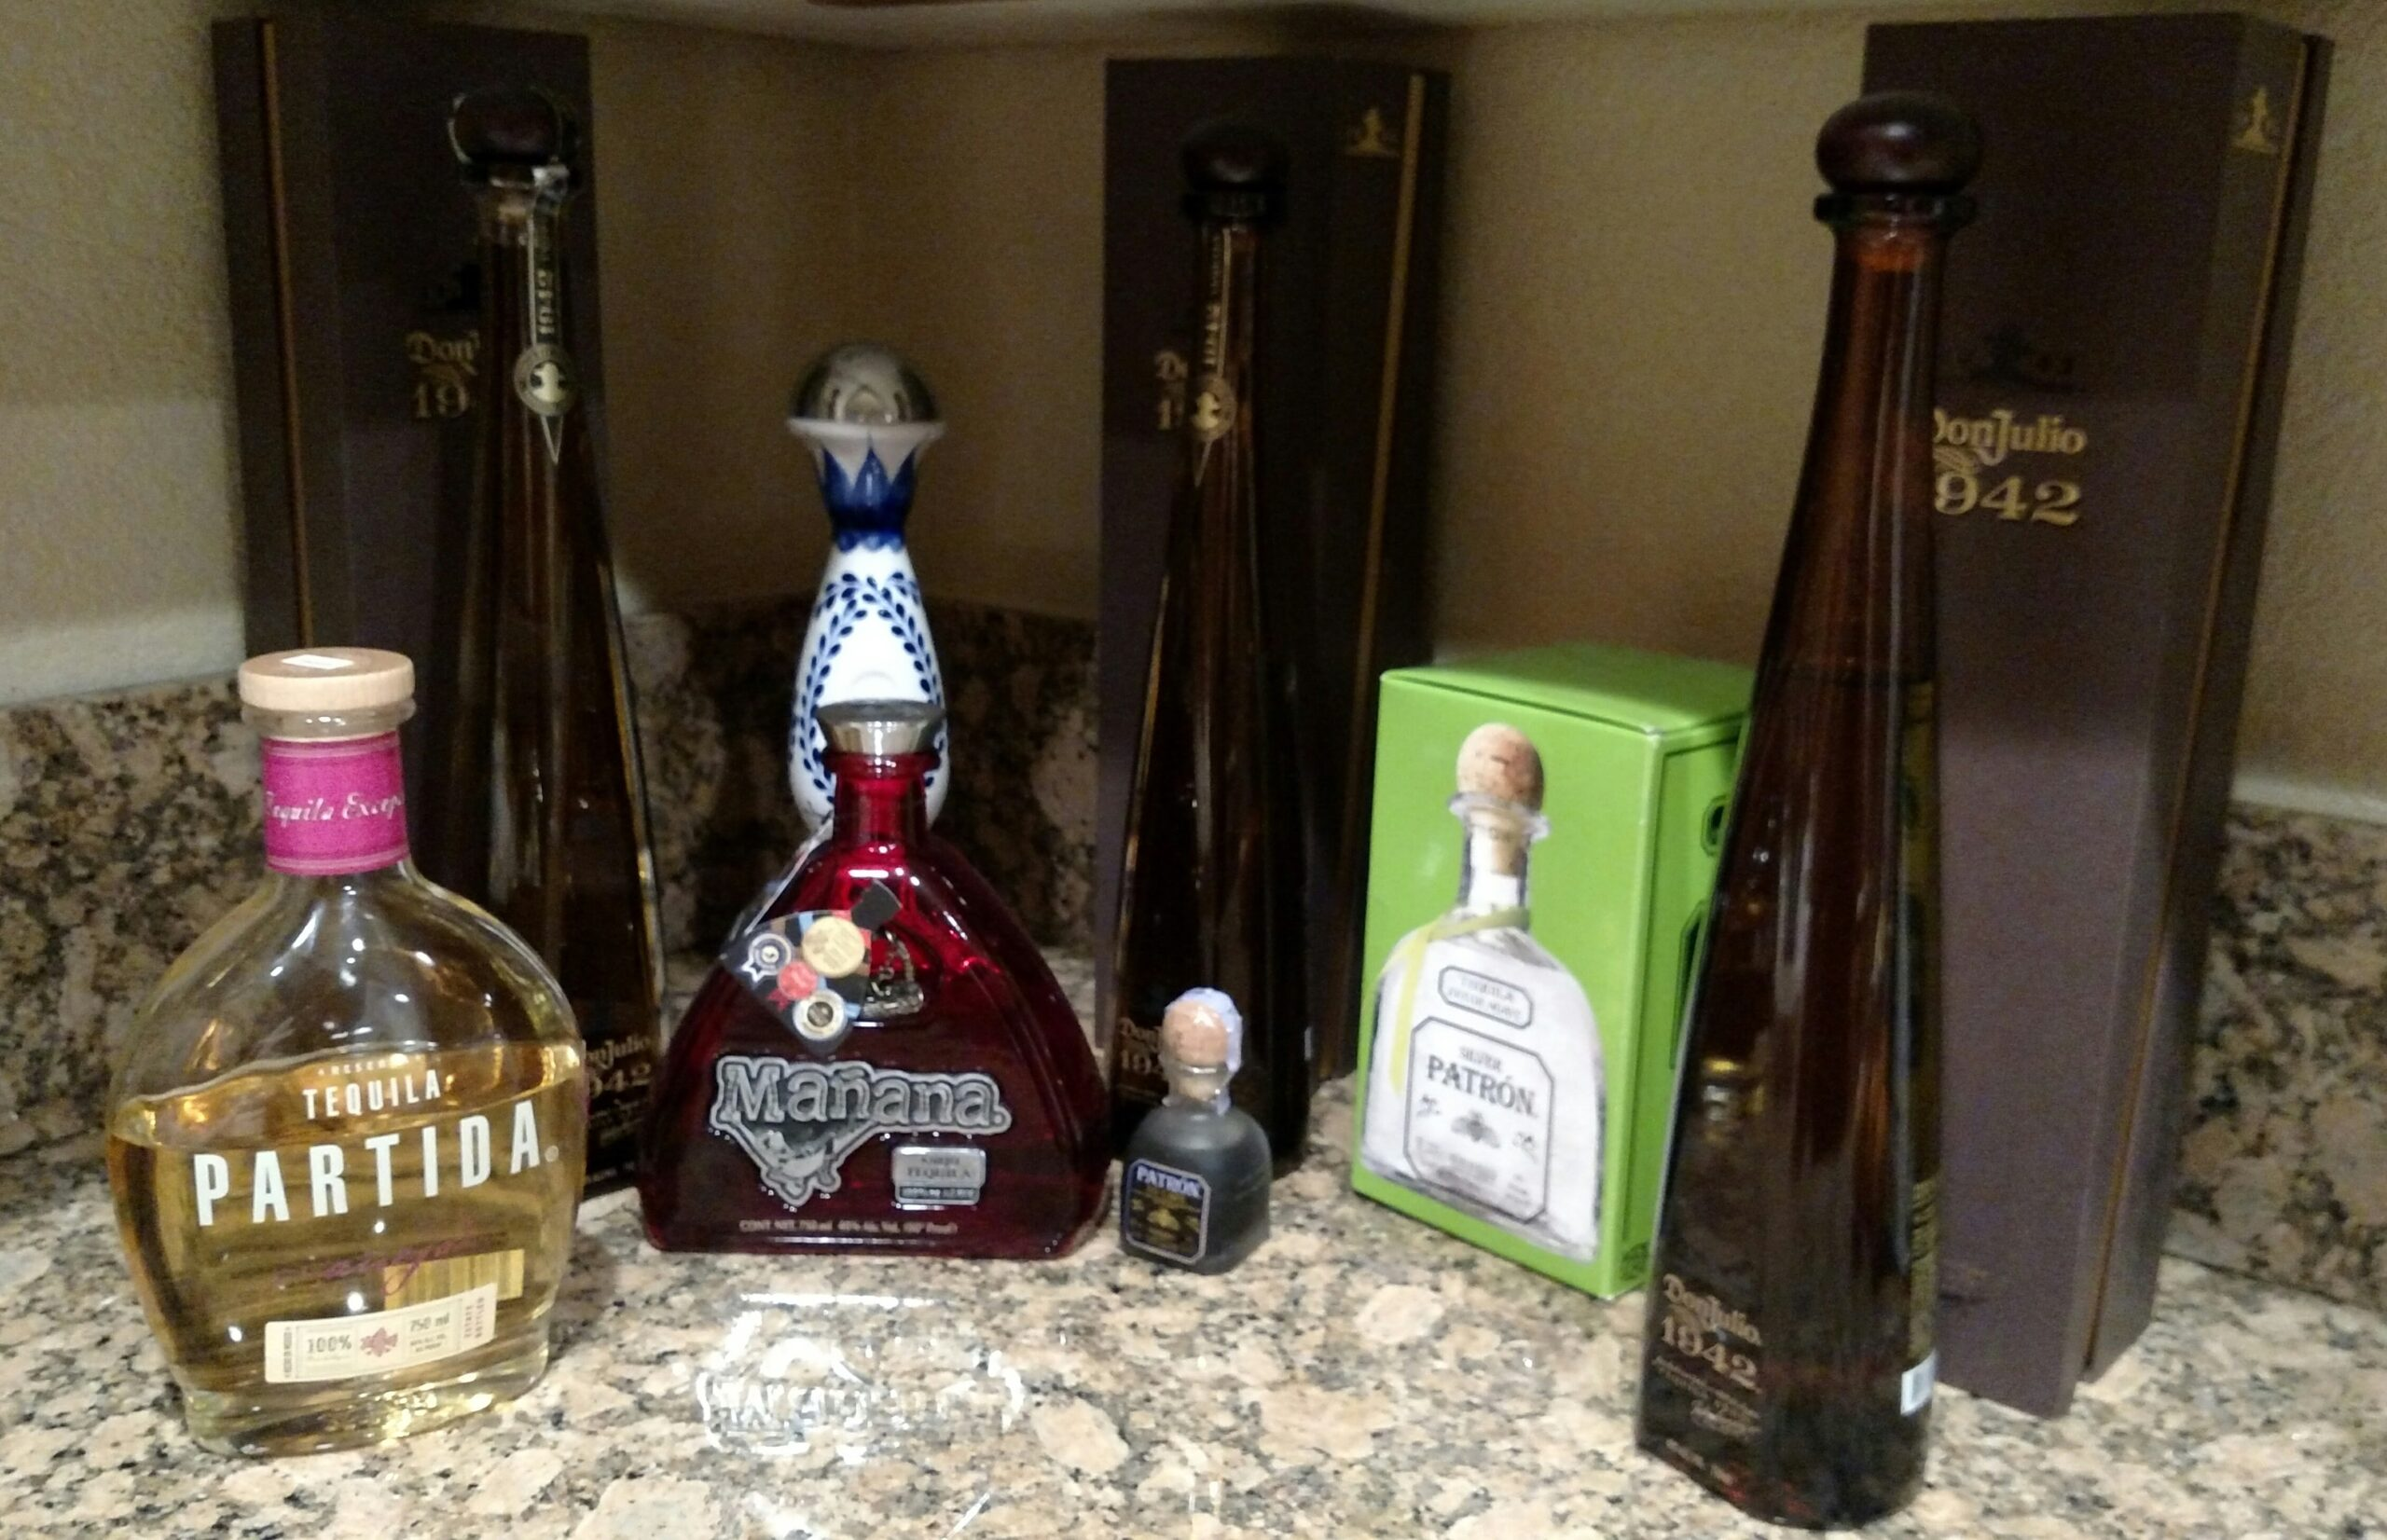 Tequila-Ricopic